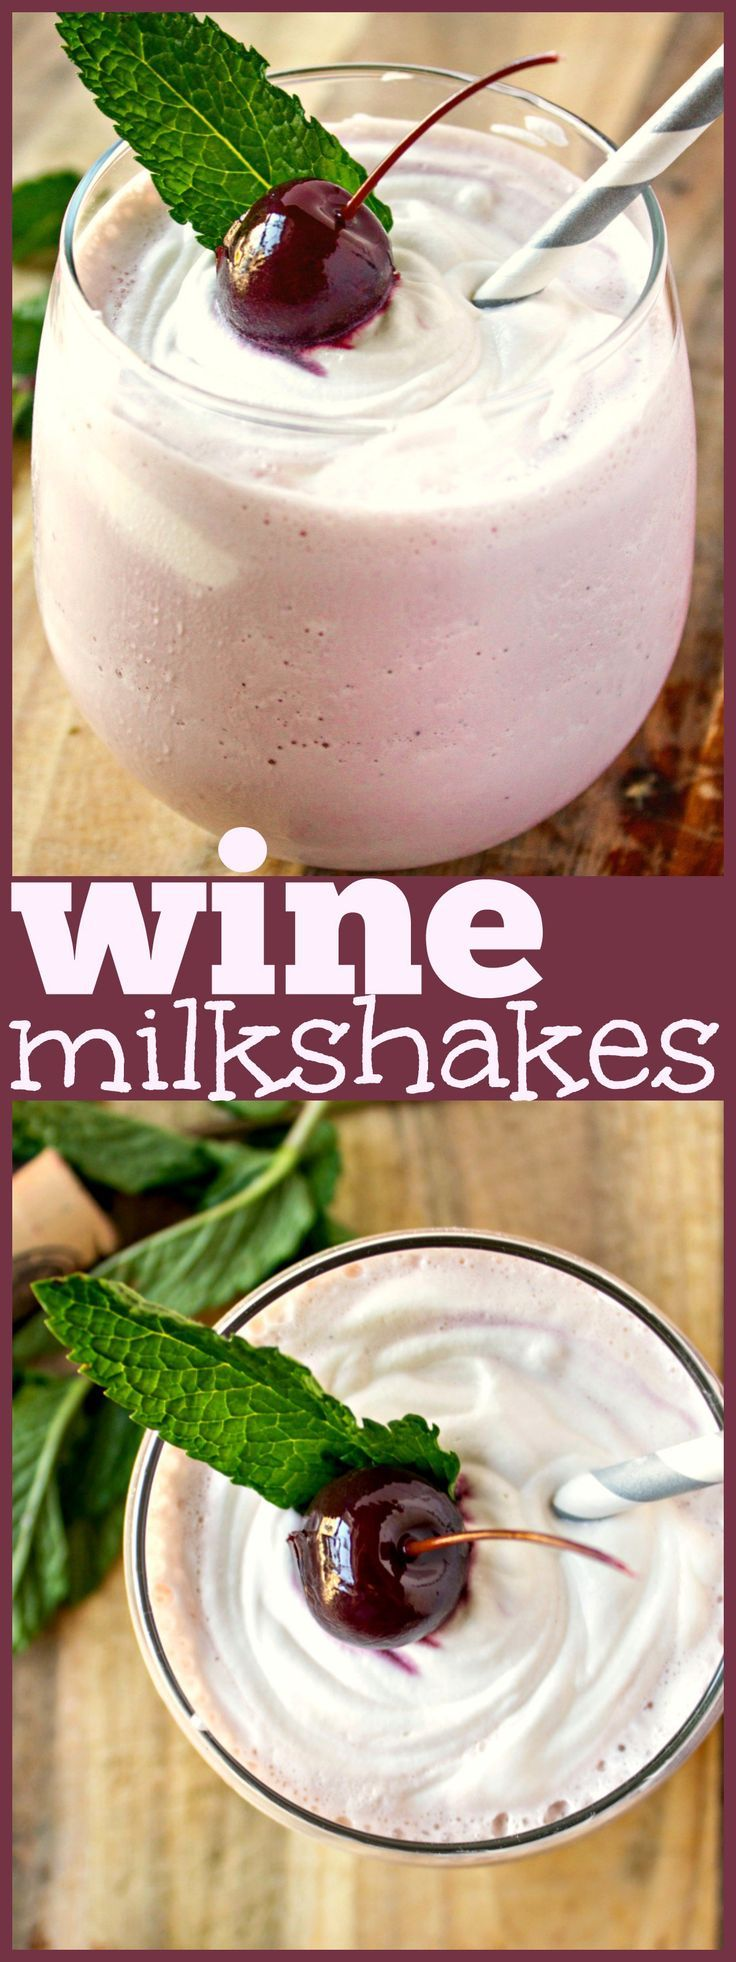 Delicious and refreshing boozy milkshakes made with red wine and ice cream. That's it!